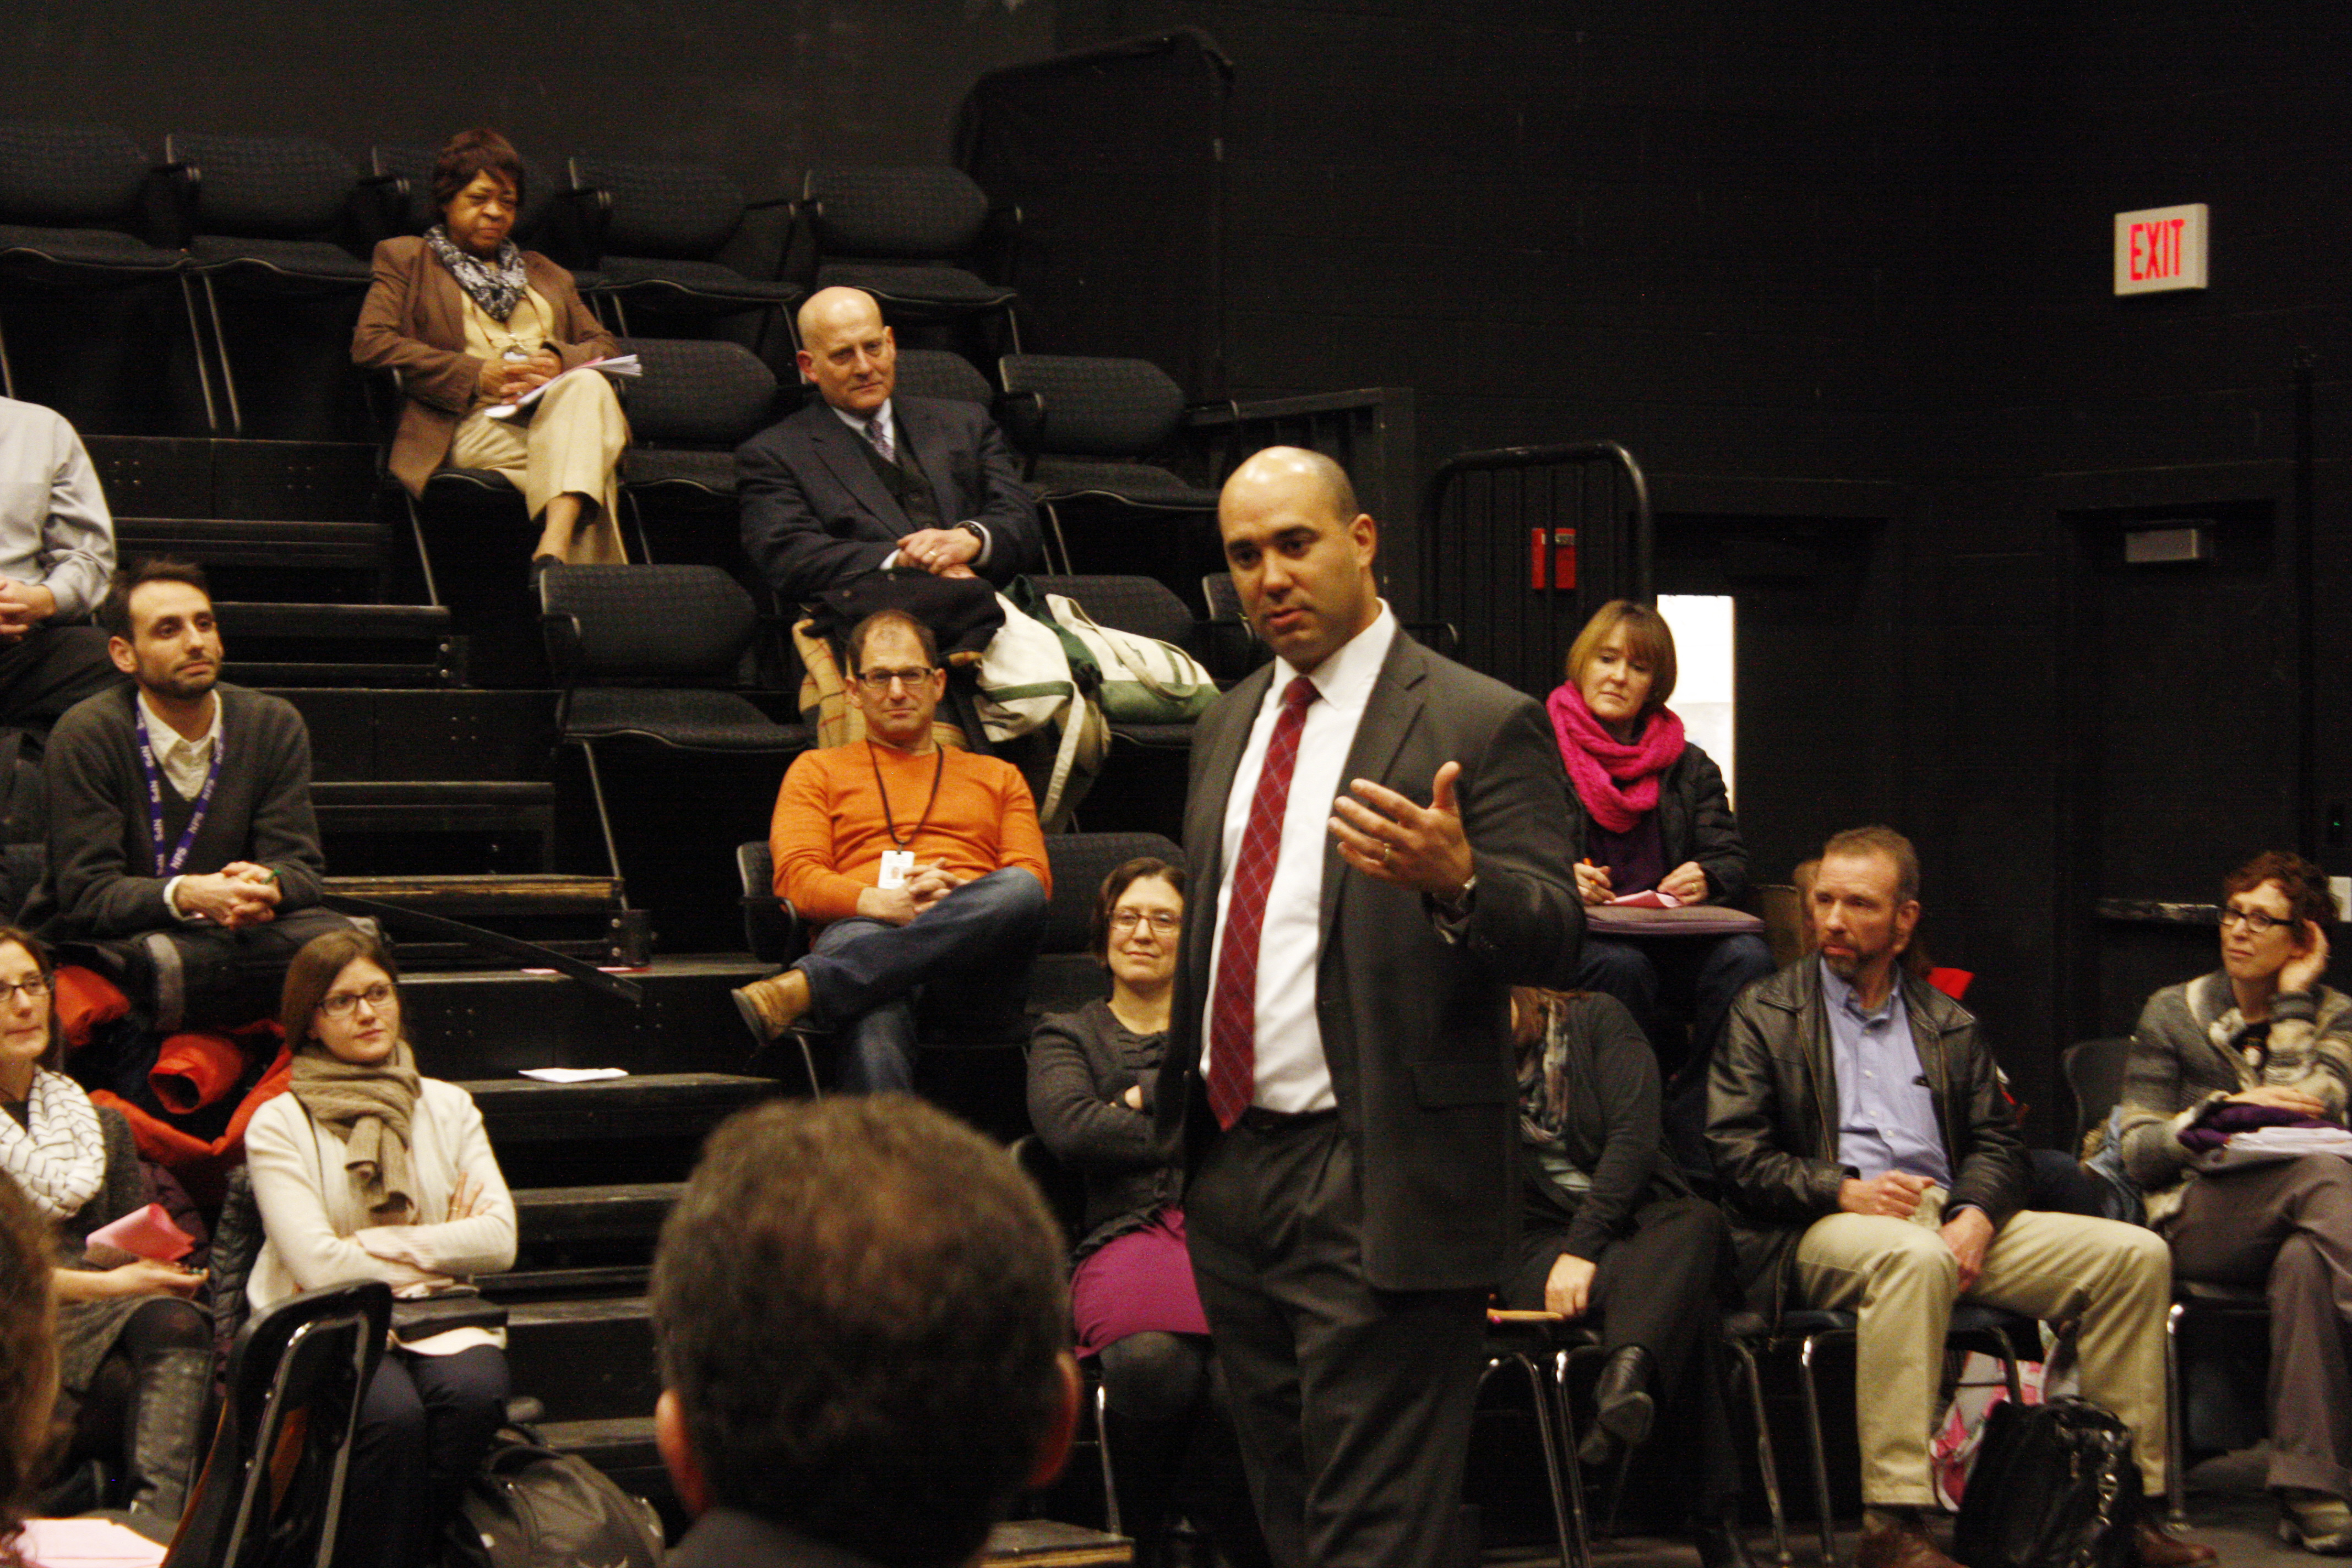 Principal search semi-finalist Henry Turner speaks to staff in the Little Theater during his visit Thursday, Jan. 11.